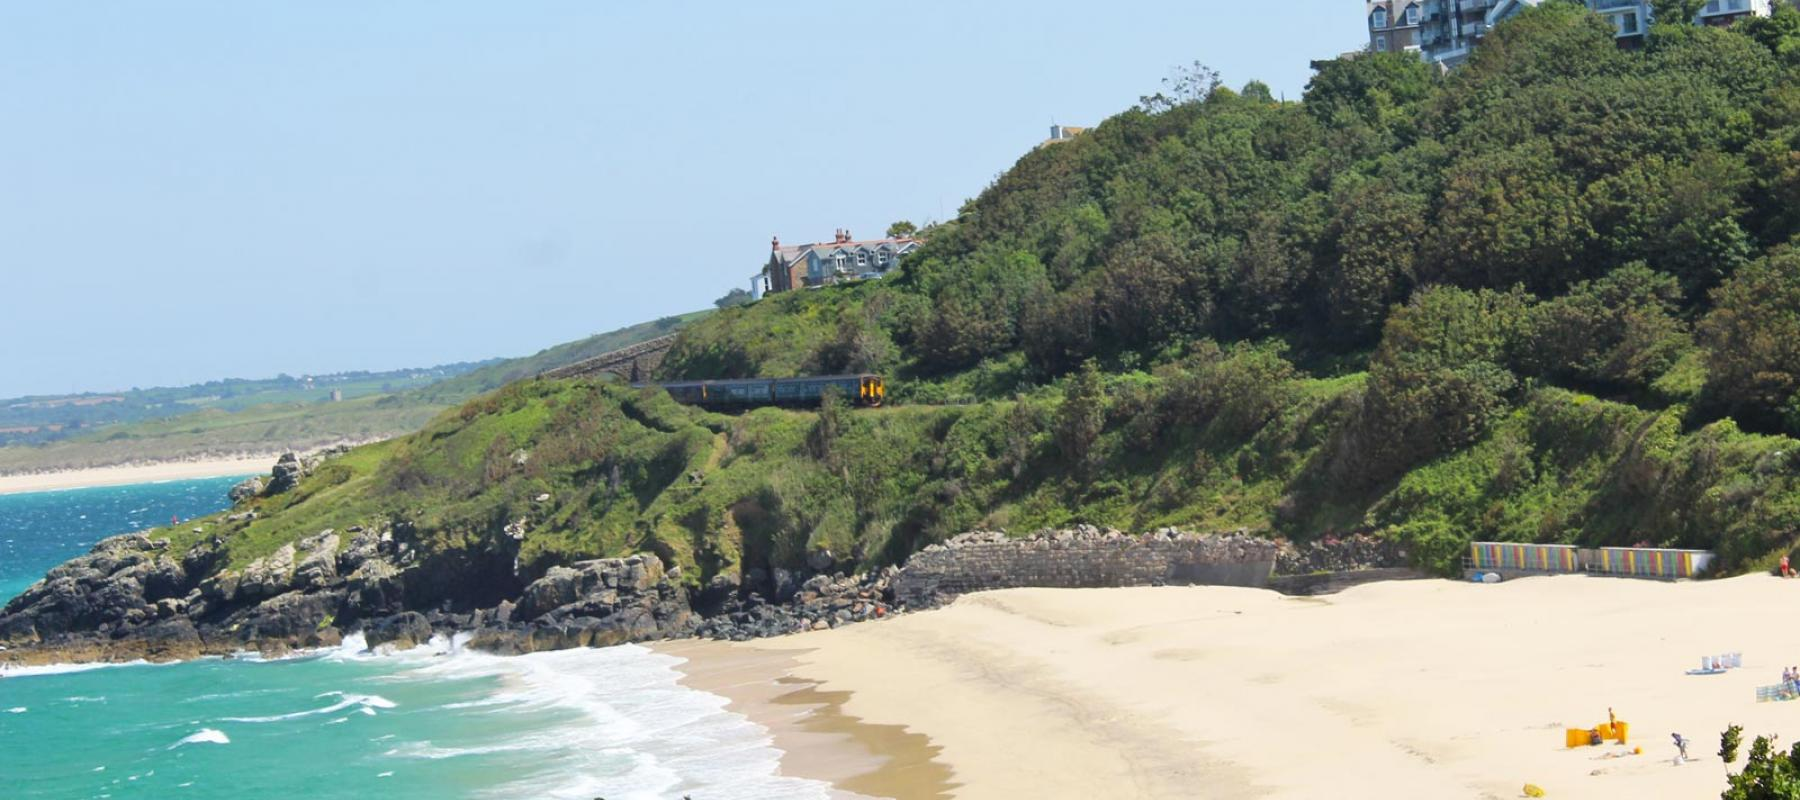 GWR train on St Ives Bay Line